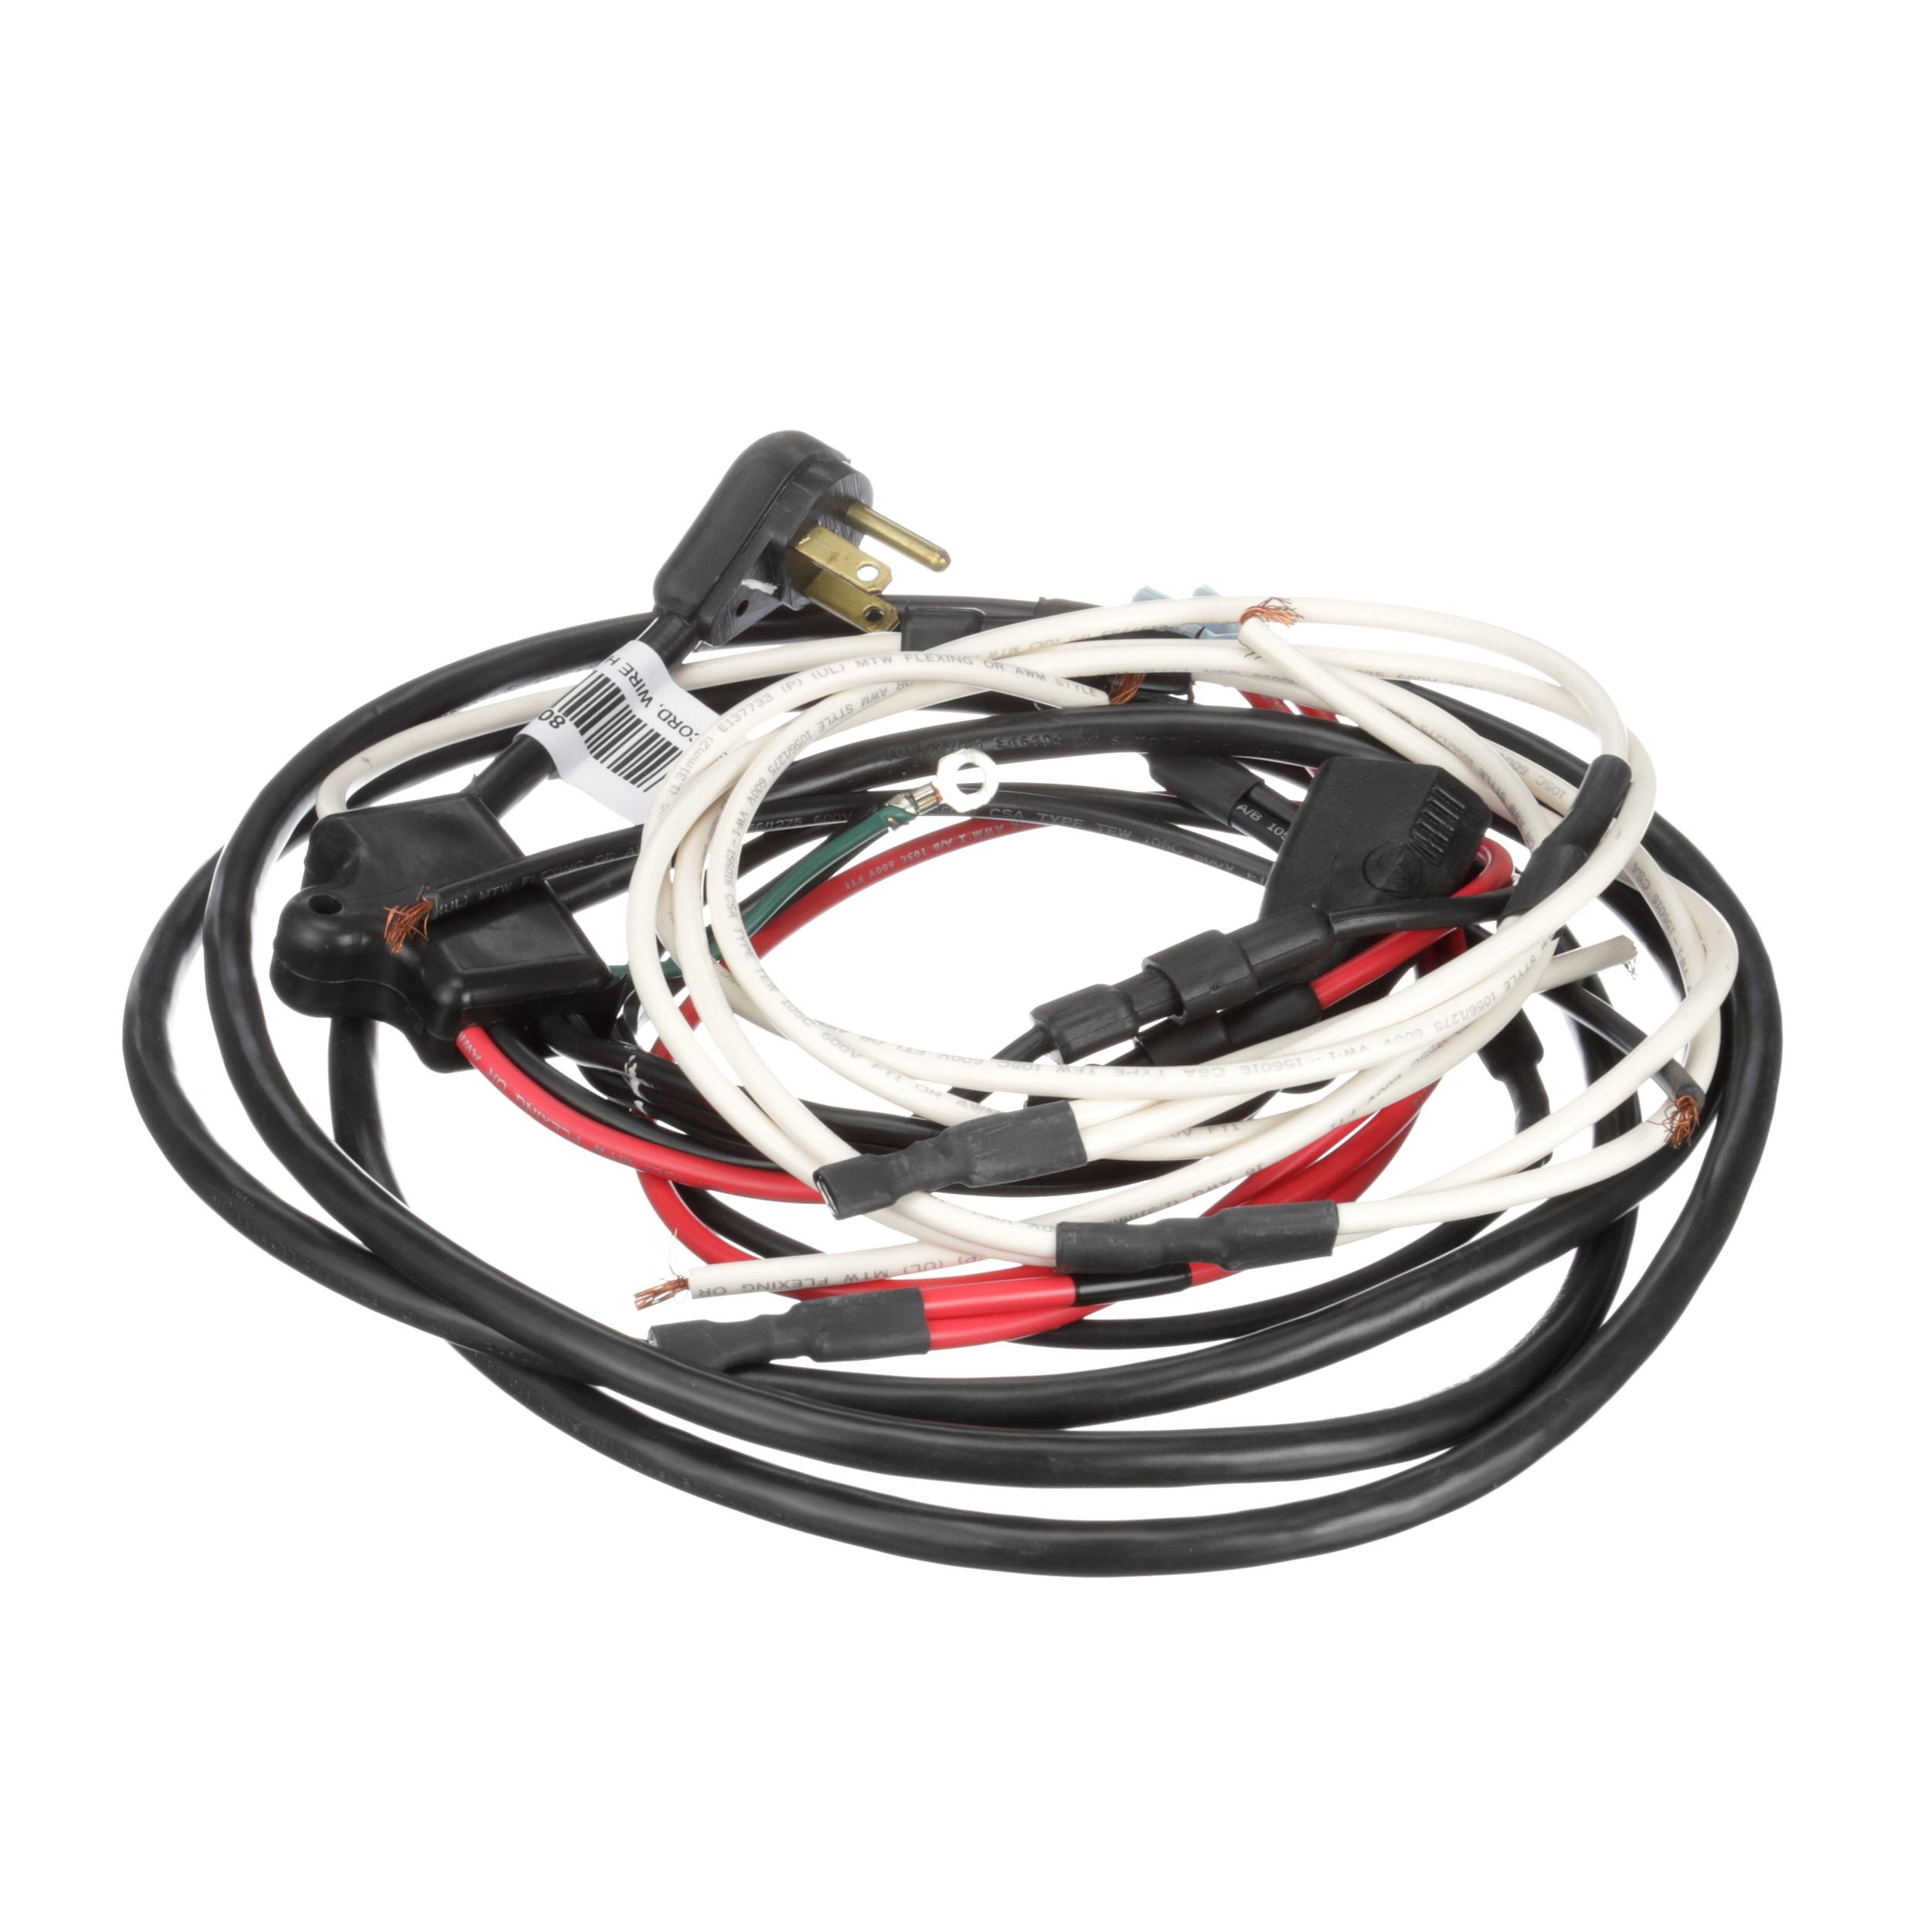 True Power Cord Wire Harness P 32 Plug 115v Part 801712 Supply Wiring